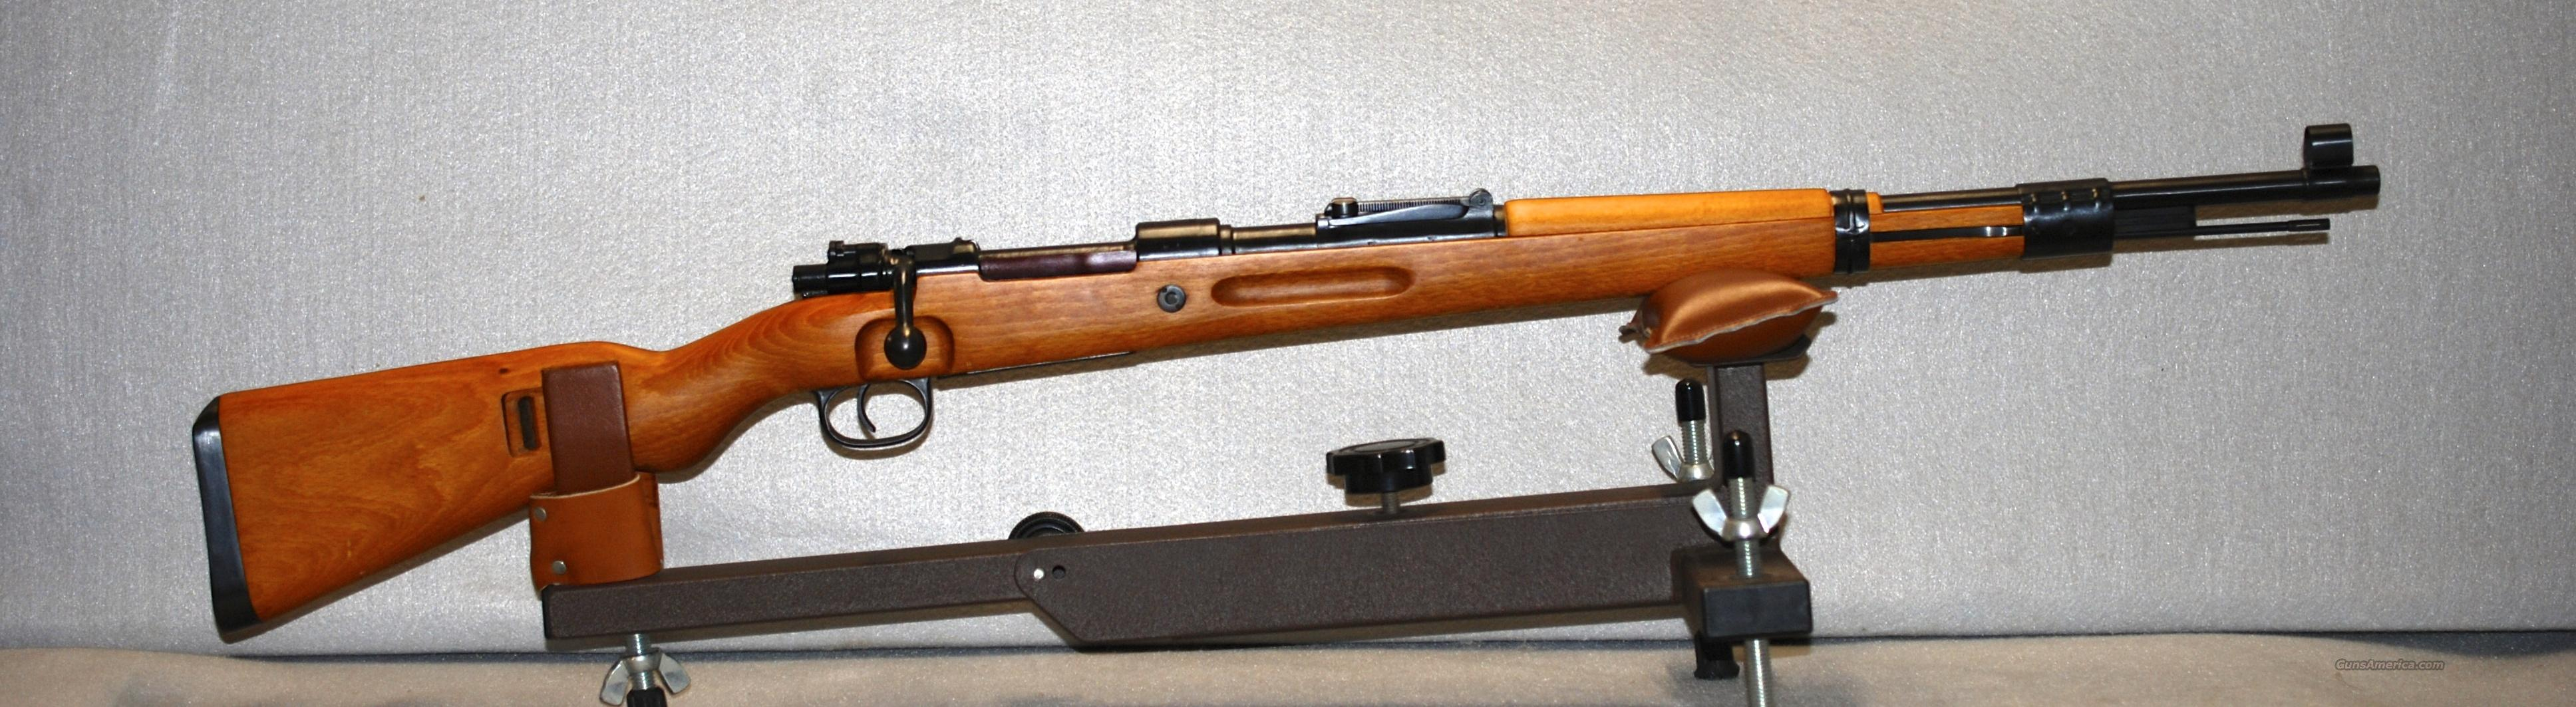 German Mauser K98, 8mm  Guns > Rifles > Mauser Rifles > German